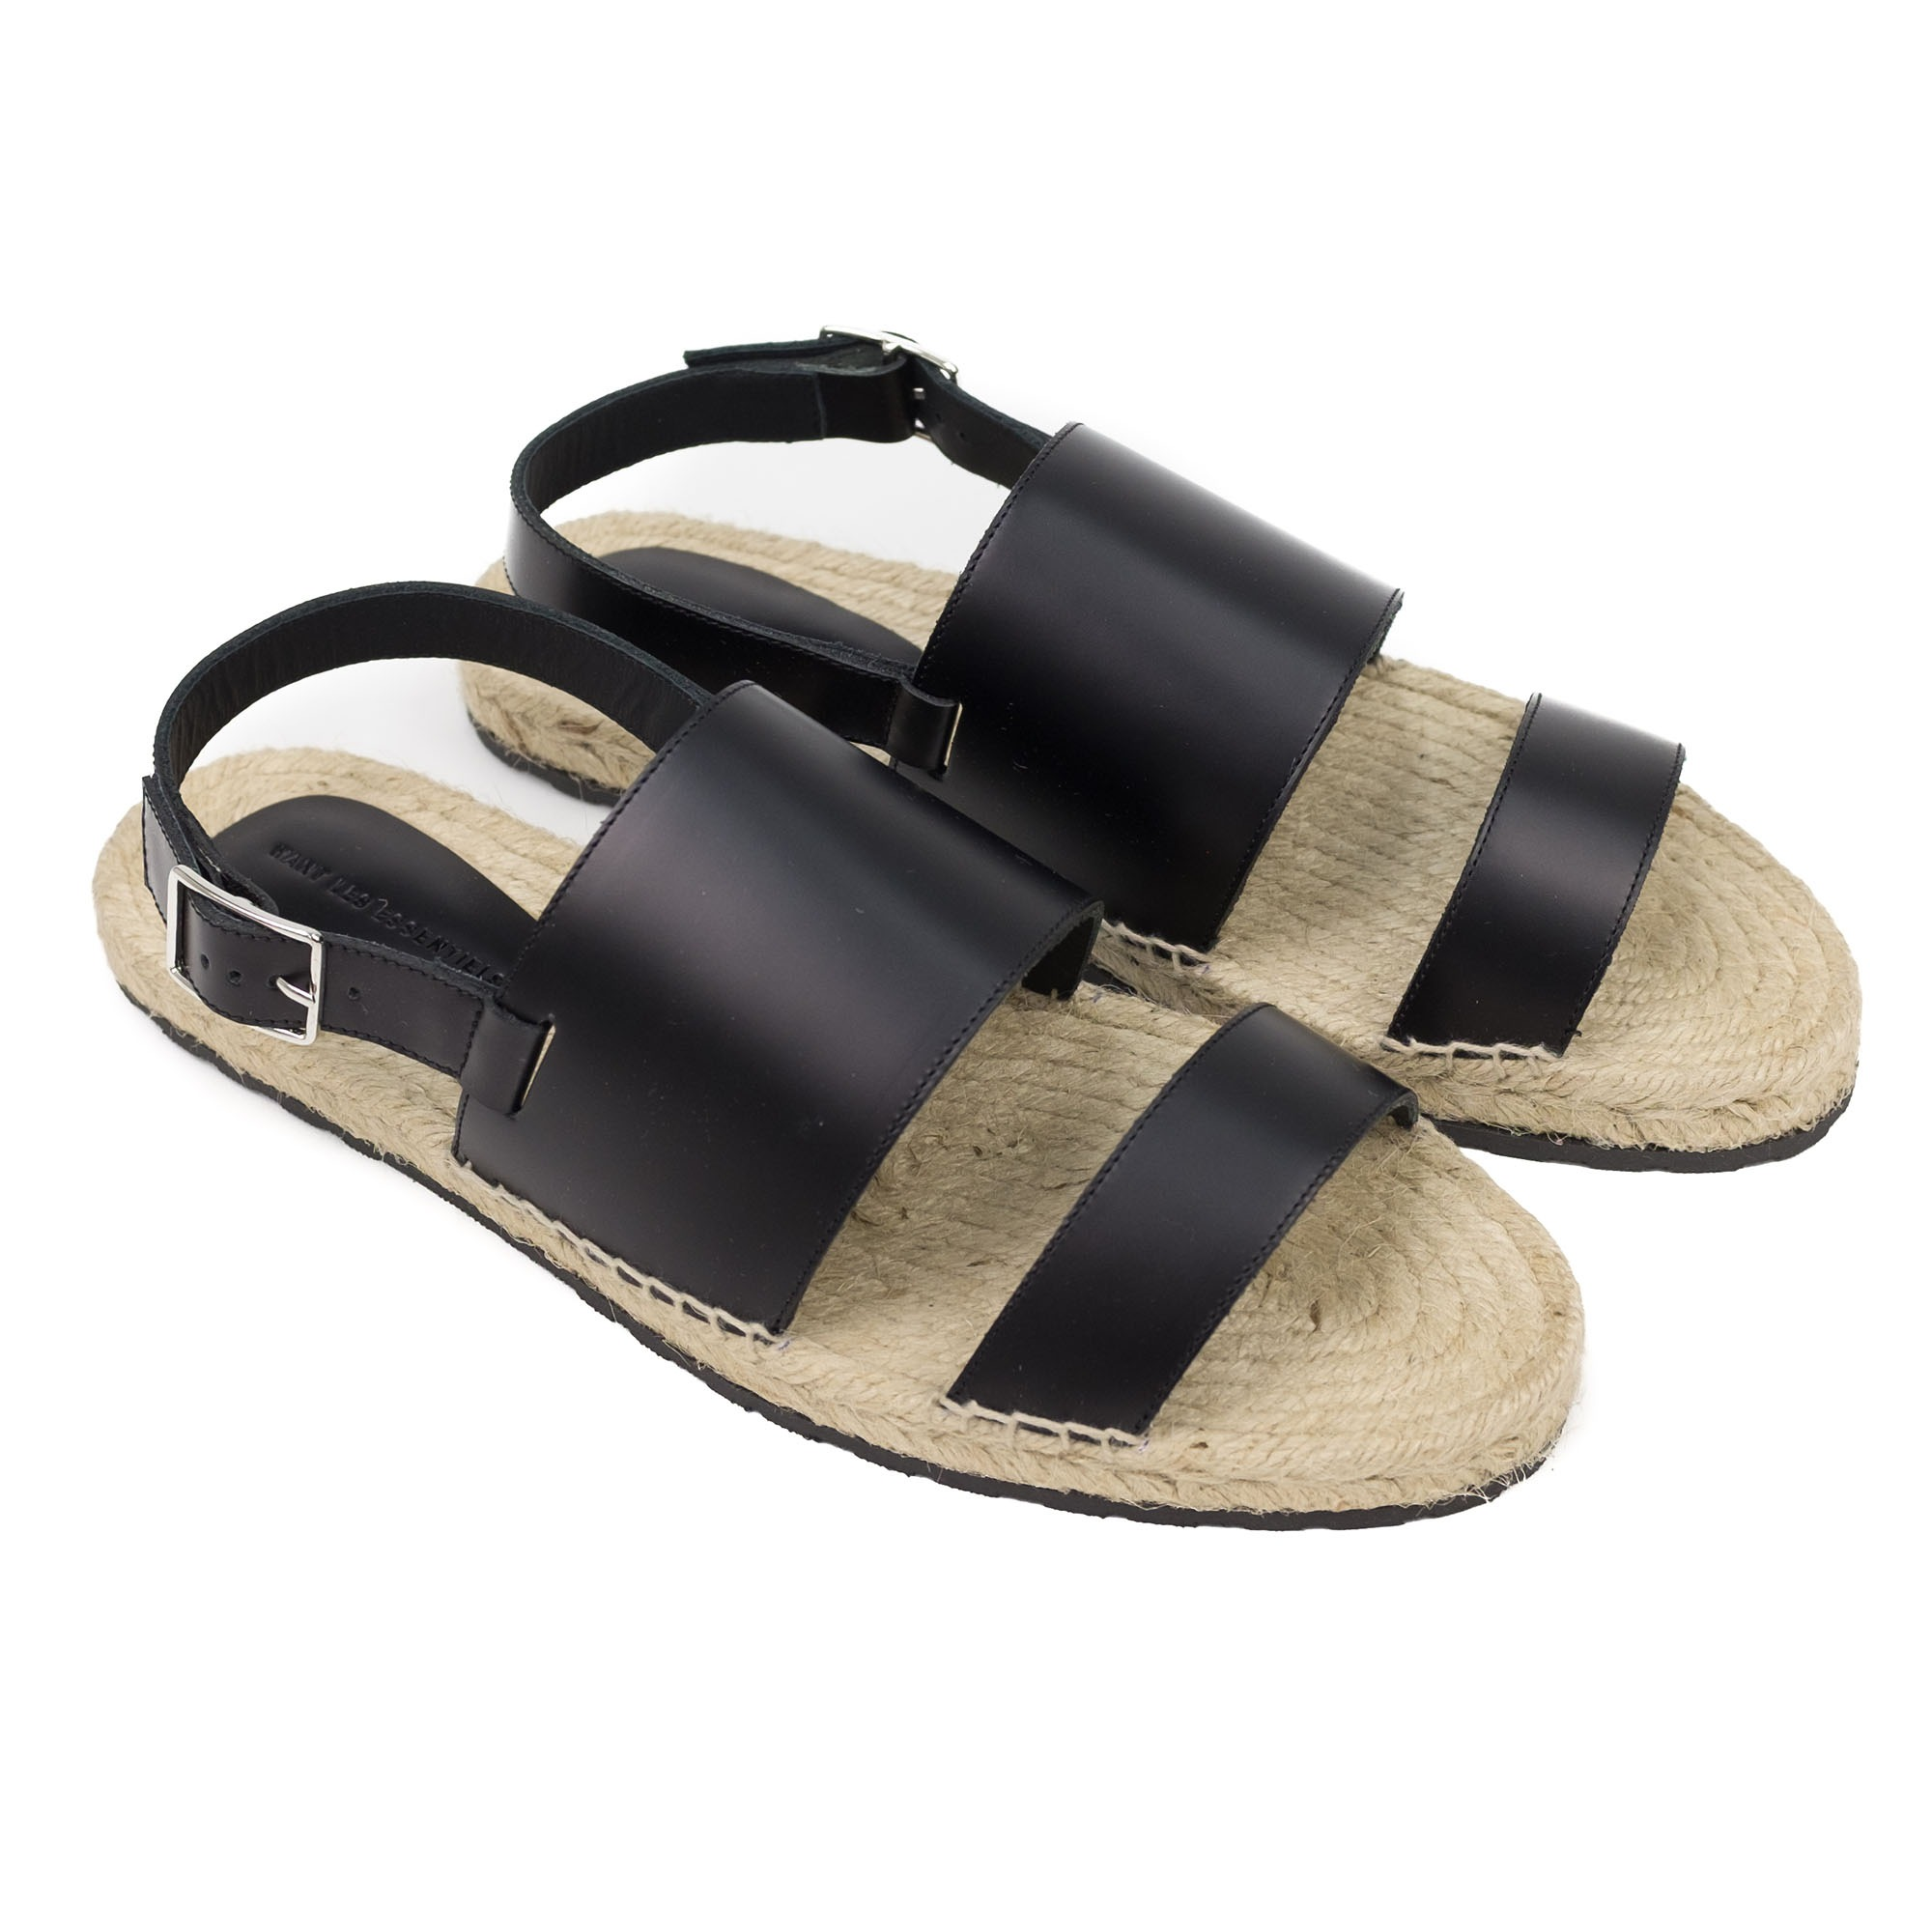 WANT Les Essentiels Moreno Espadrille Sandal - Black/Jute